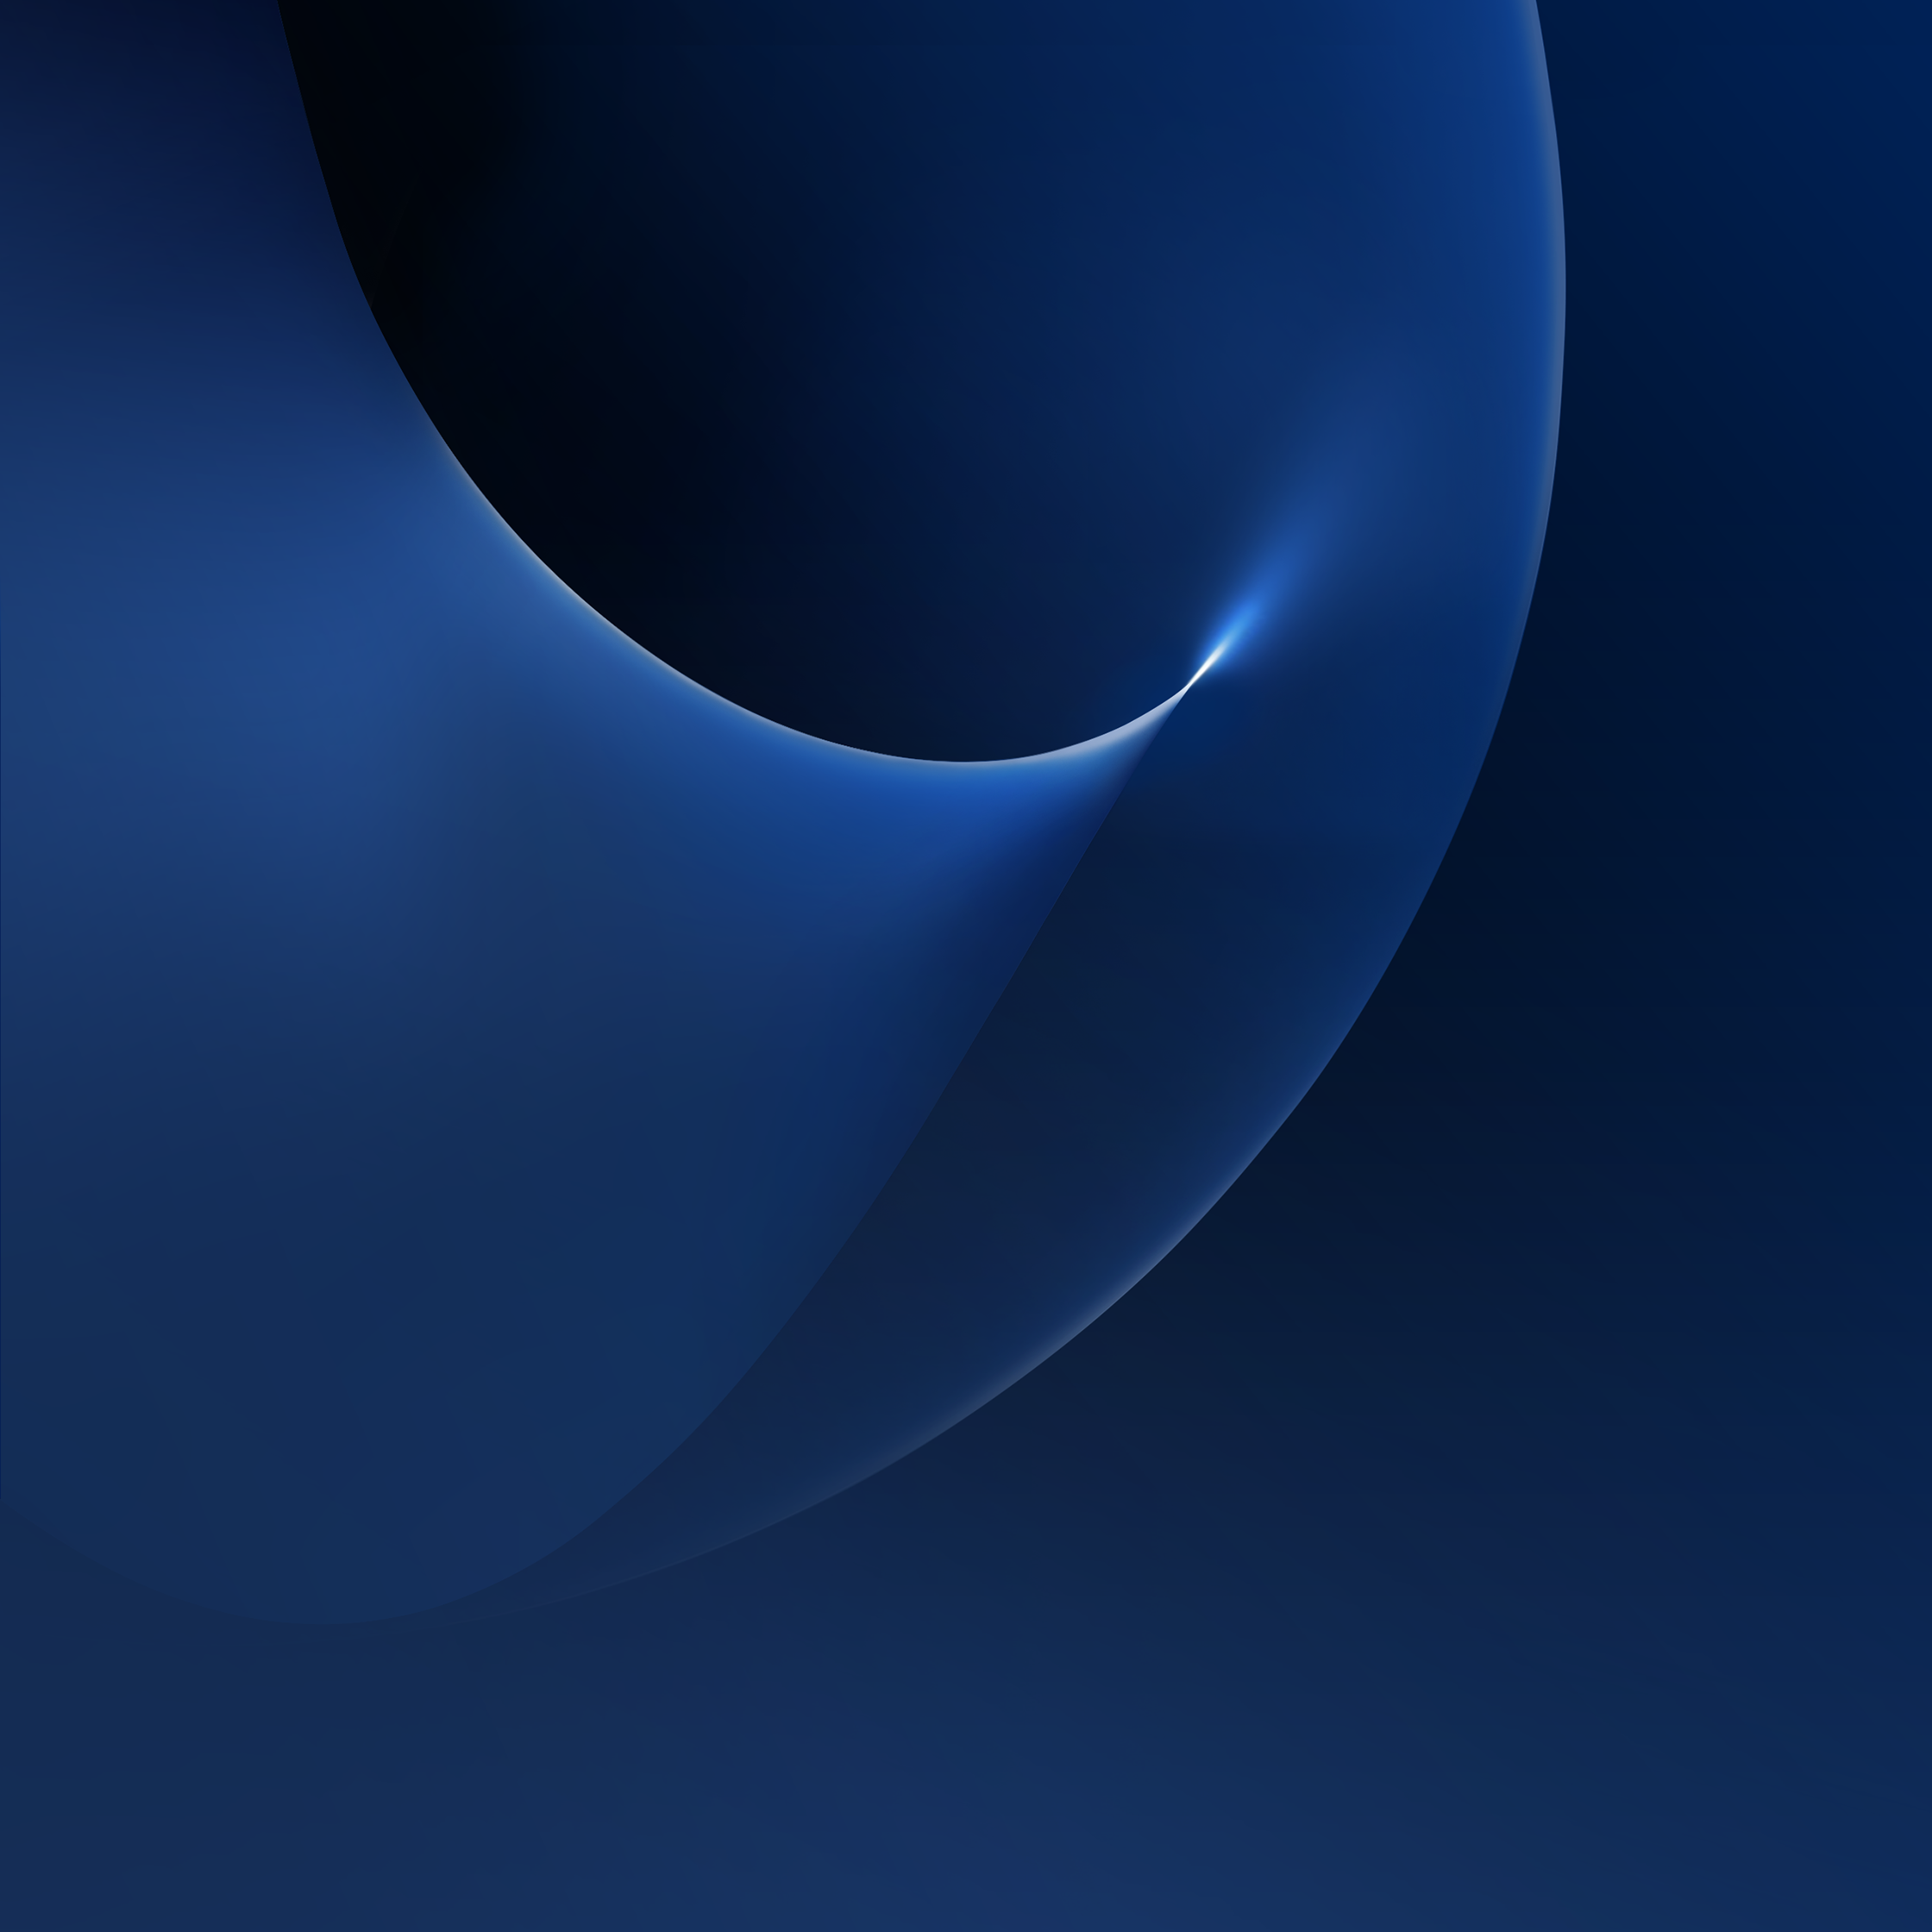 Download Stock Wallpapers Of Galaxy S7 And S7 Edge